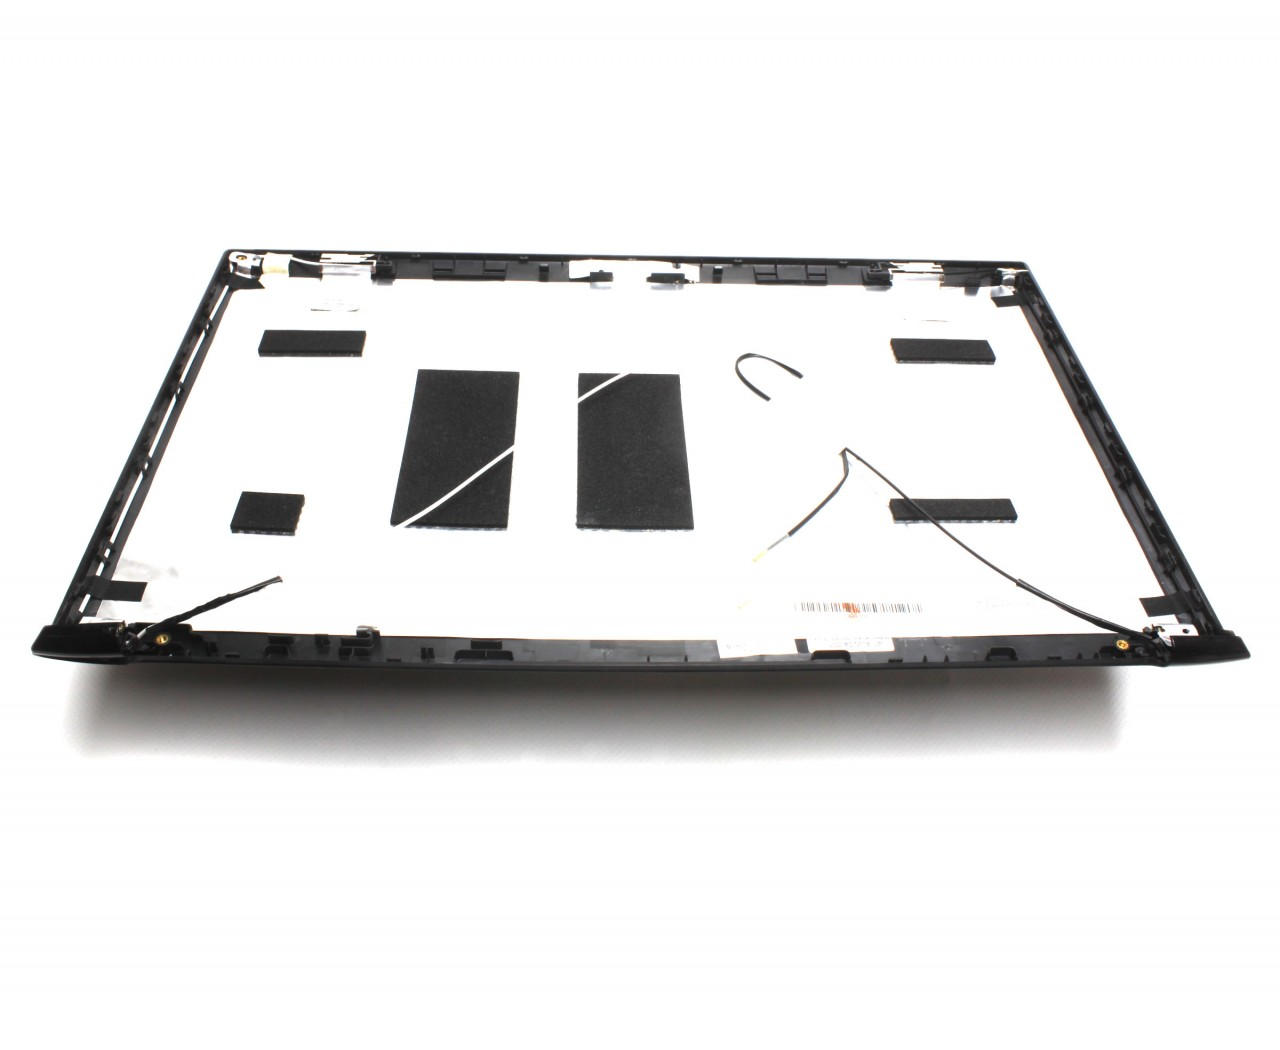 Capac Display BackCover IBM Lenovo 31045735 Carcasa Display imagine powerlaptop.ro 2021